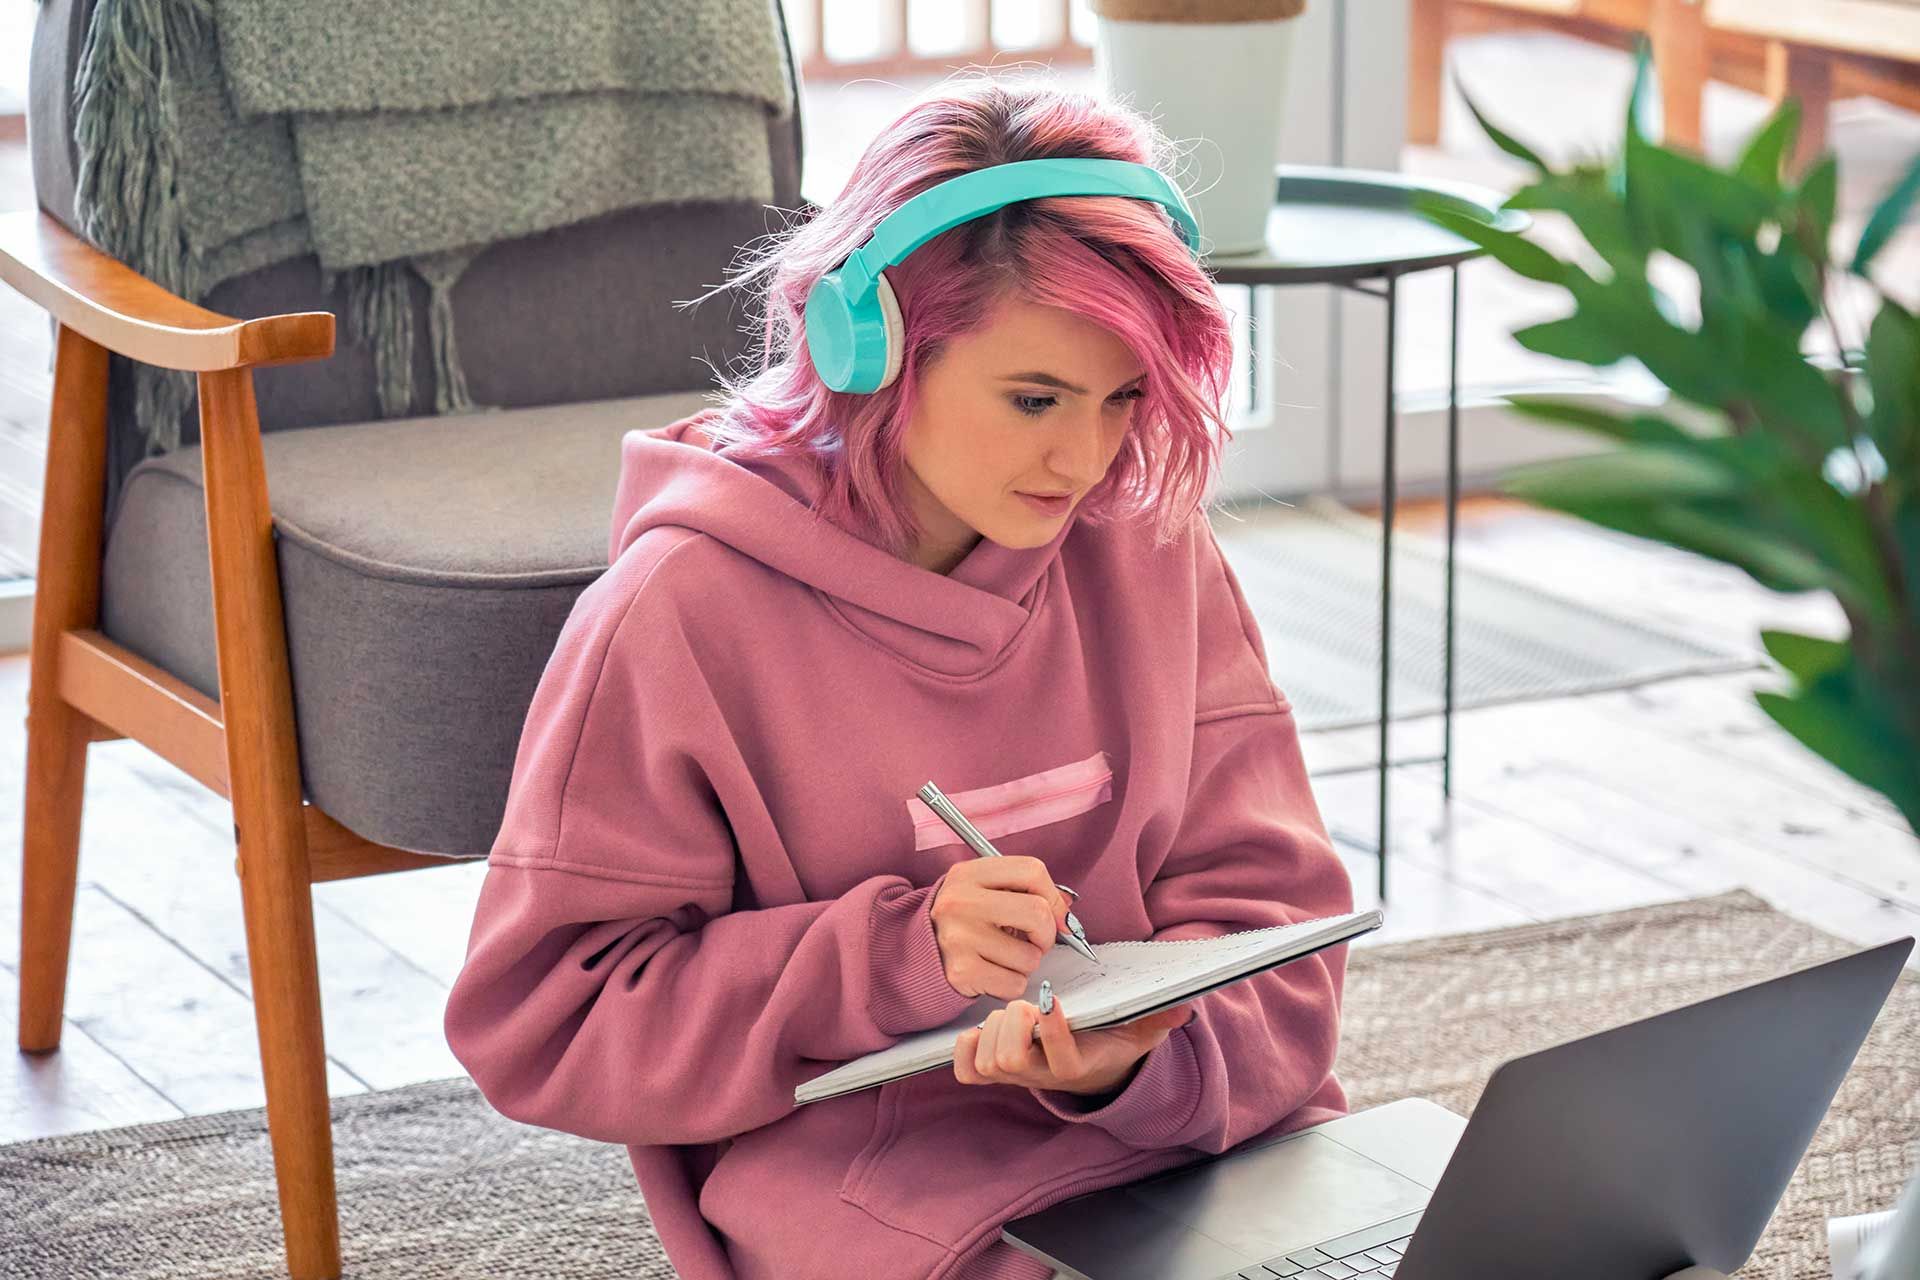 Female student with headphones taking notes while looking at laptop